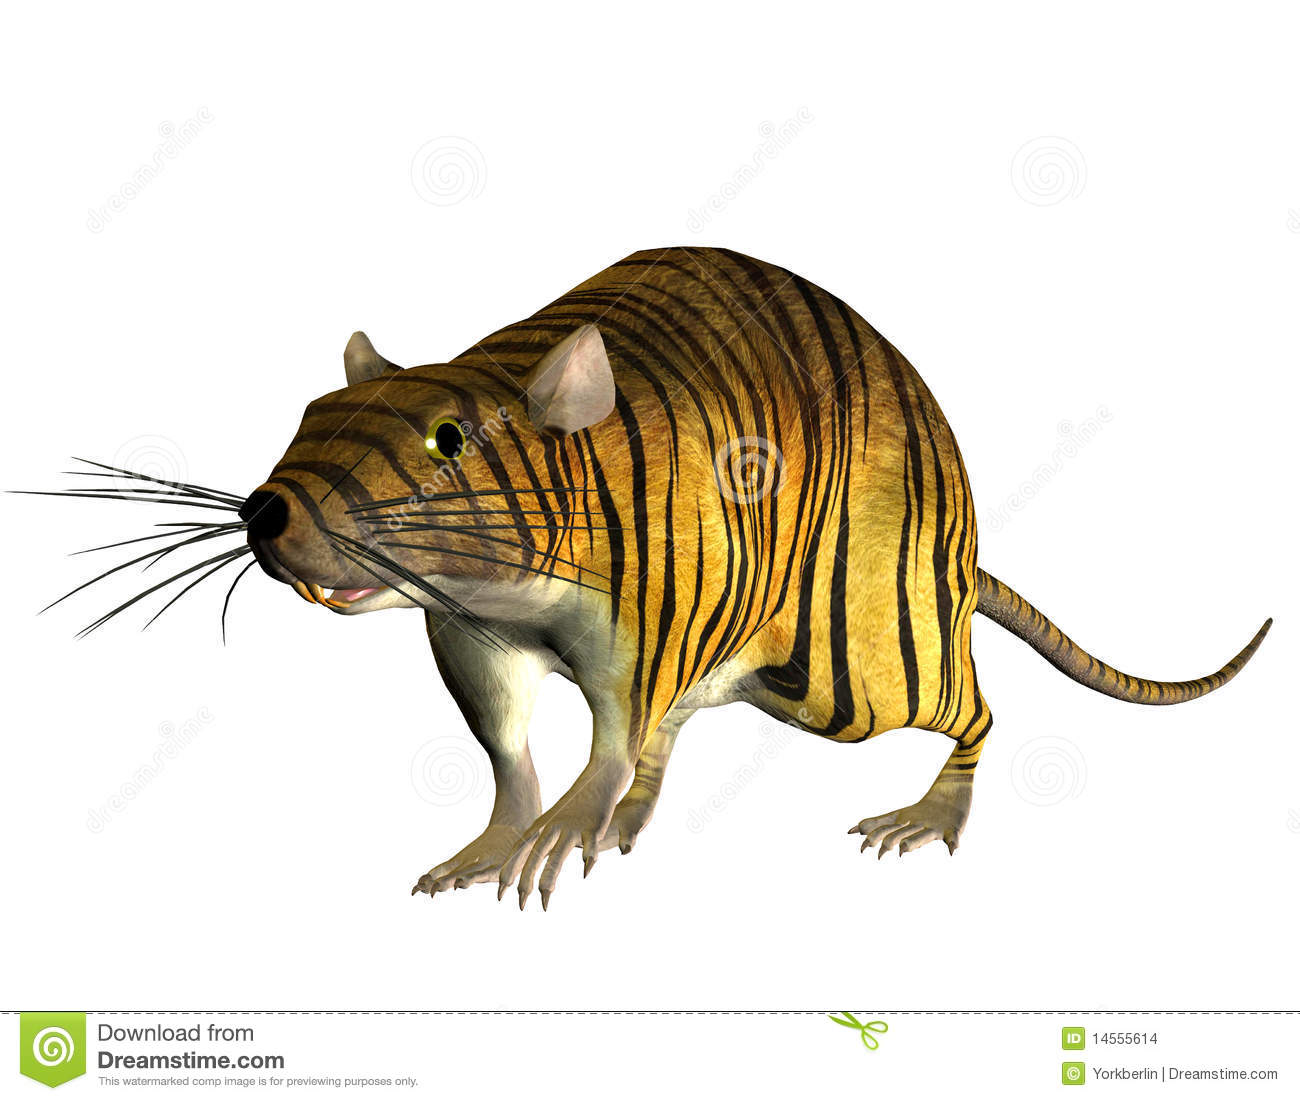 3D rendering of a surreal look Tiger in the rat